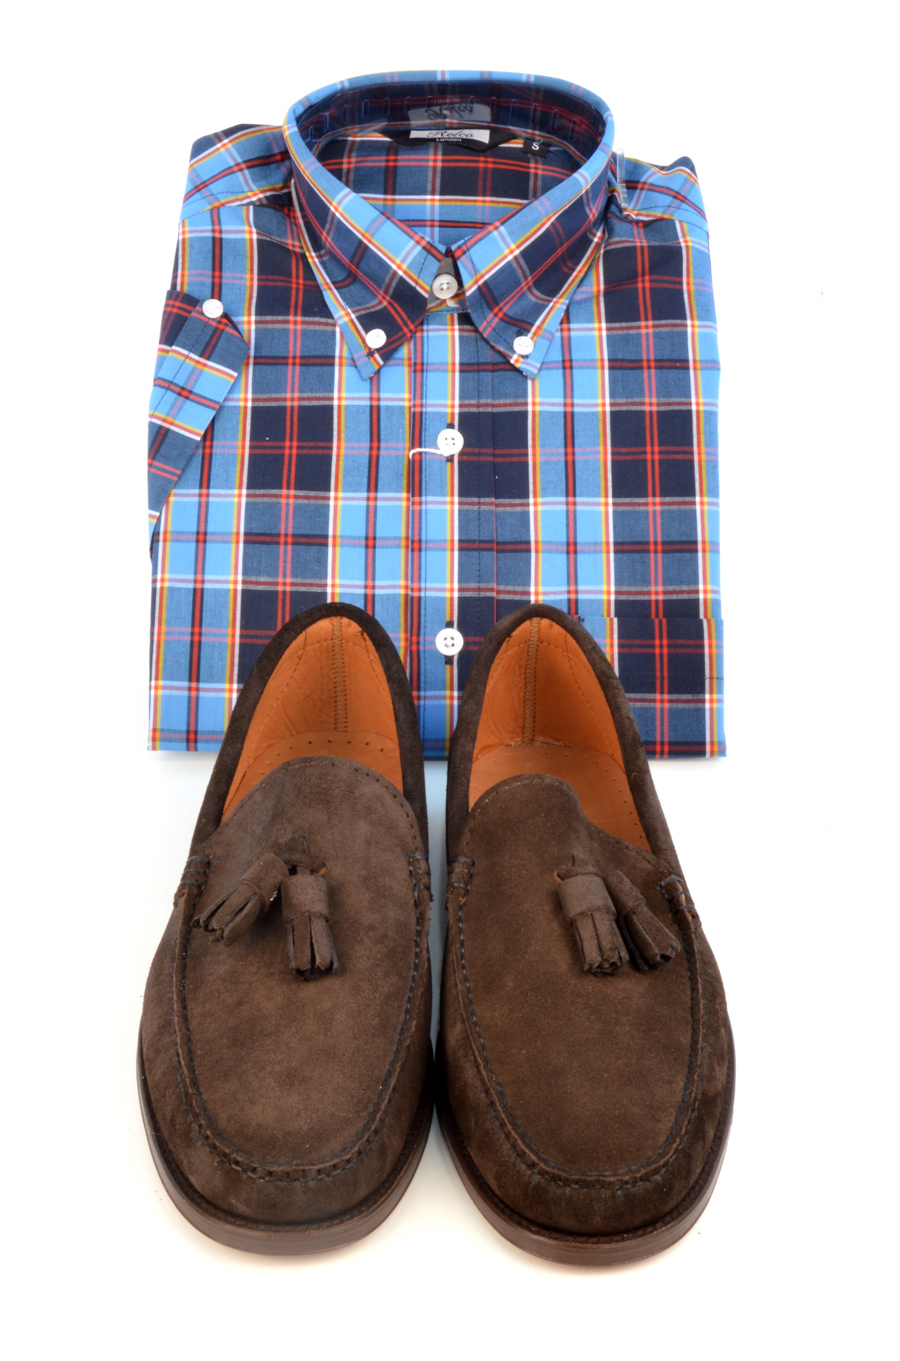 modshoes-lord-suede-loafers-with-check-shirt